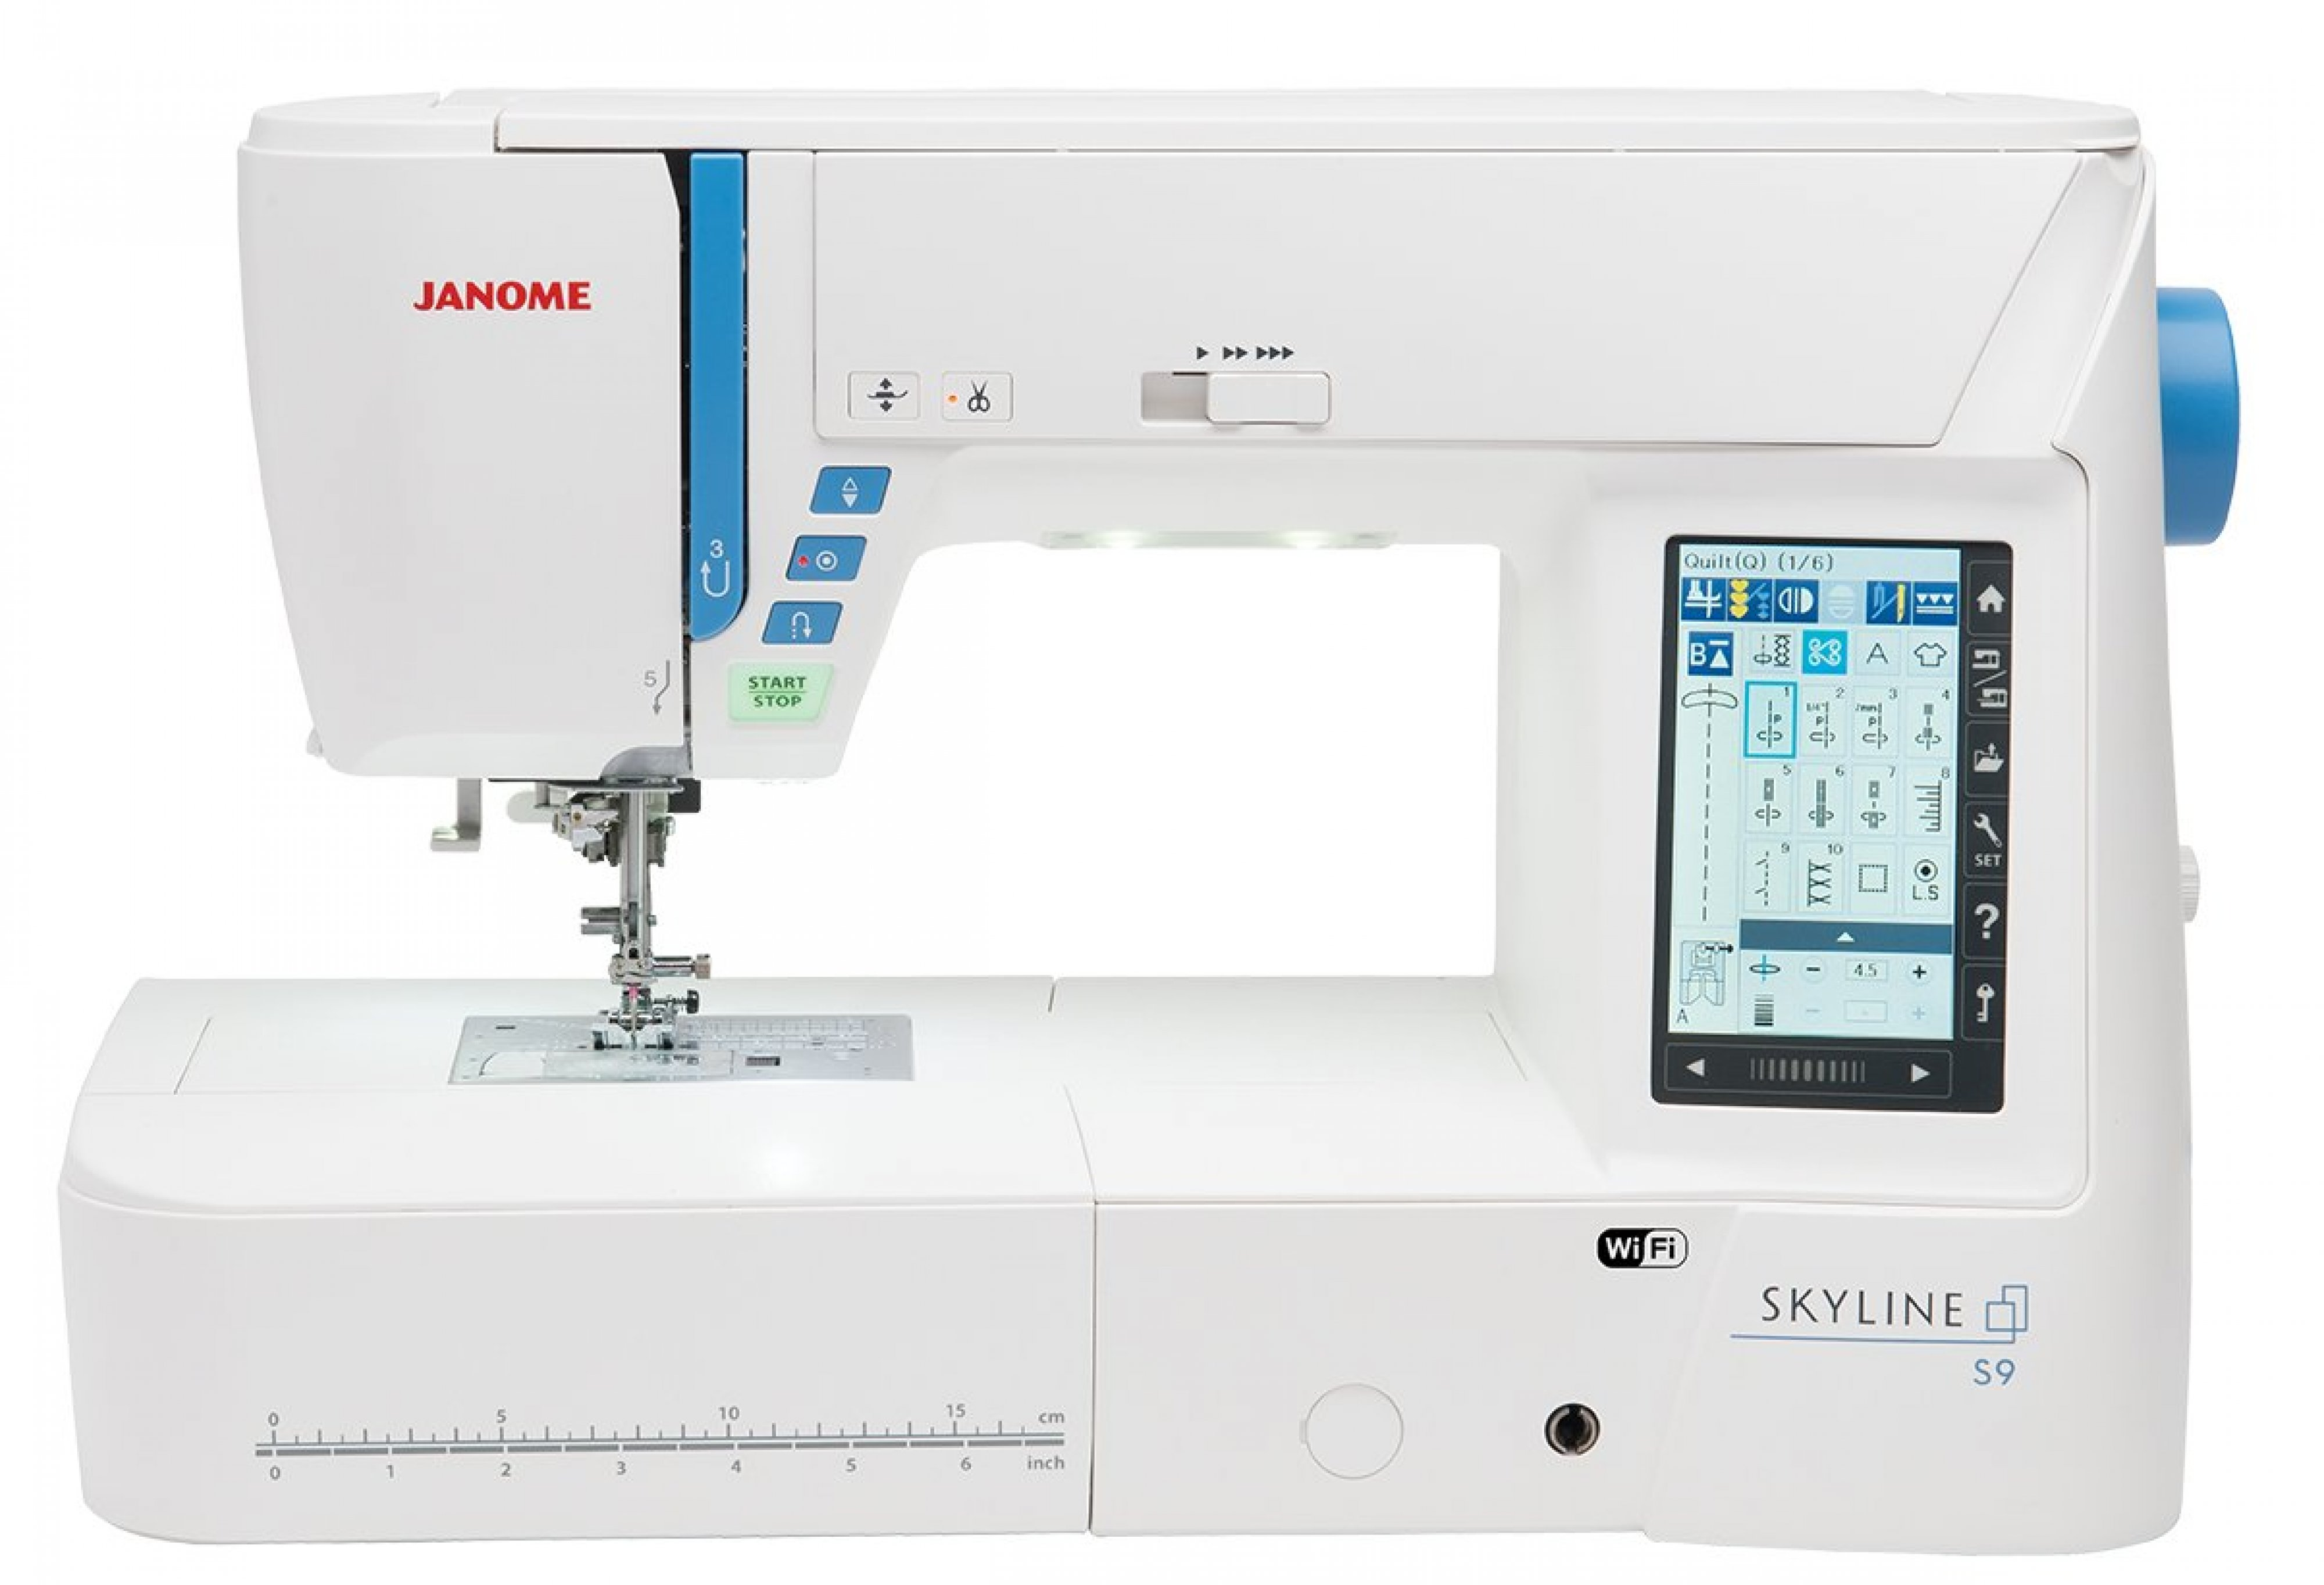 asp janome quilt gts buy innov quilting machine is pfaff p sewing machines brother toyota